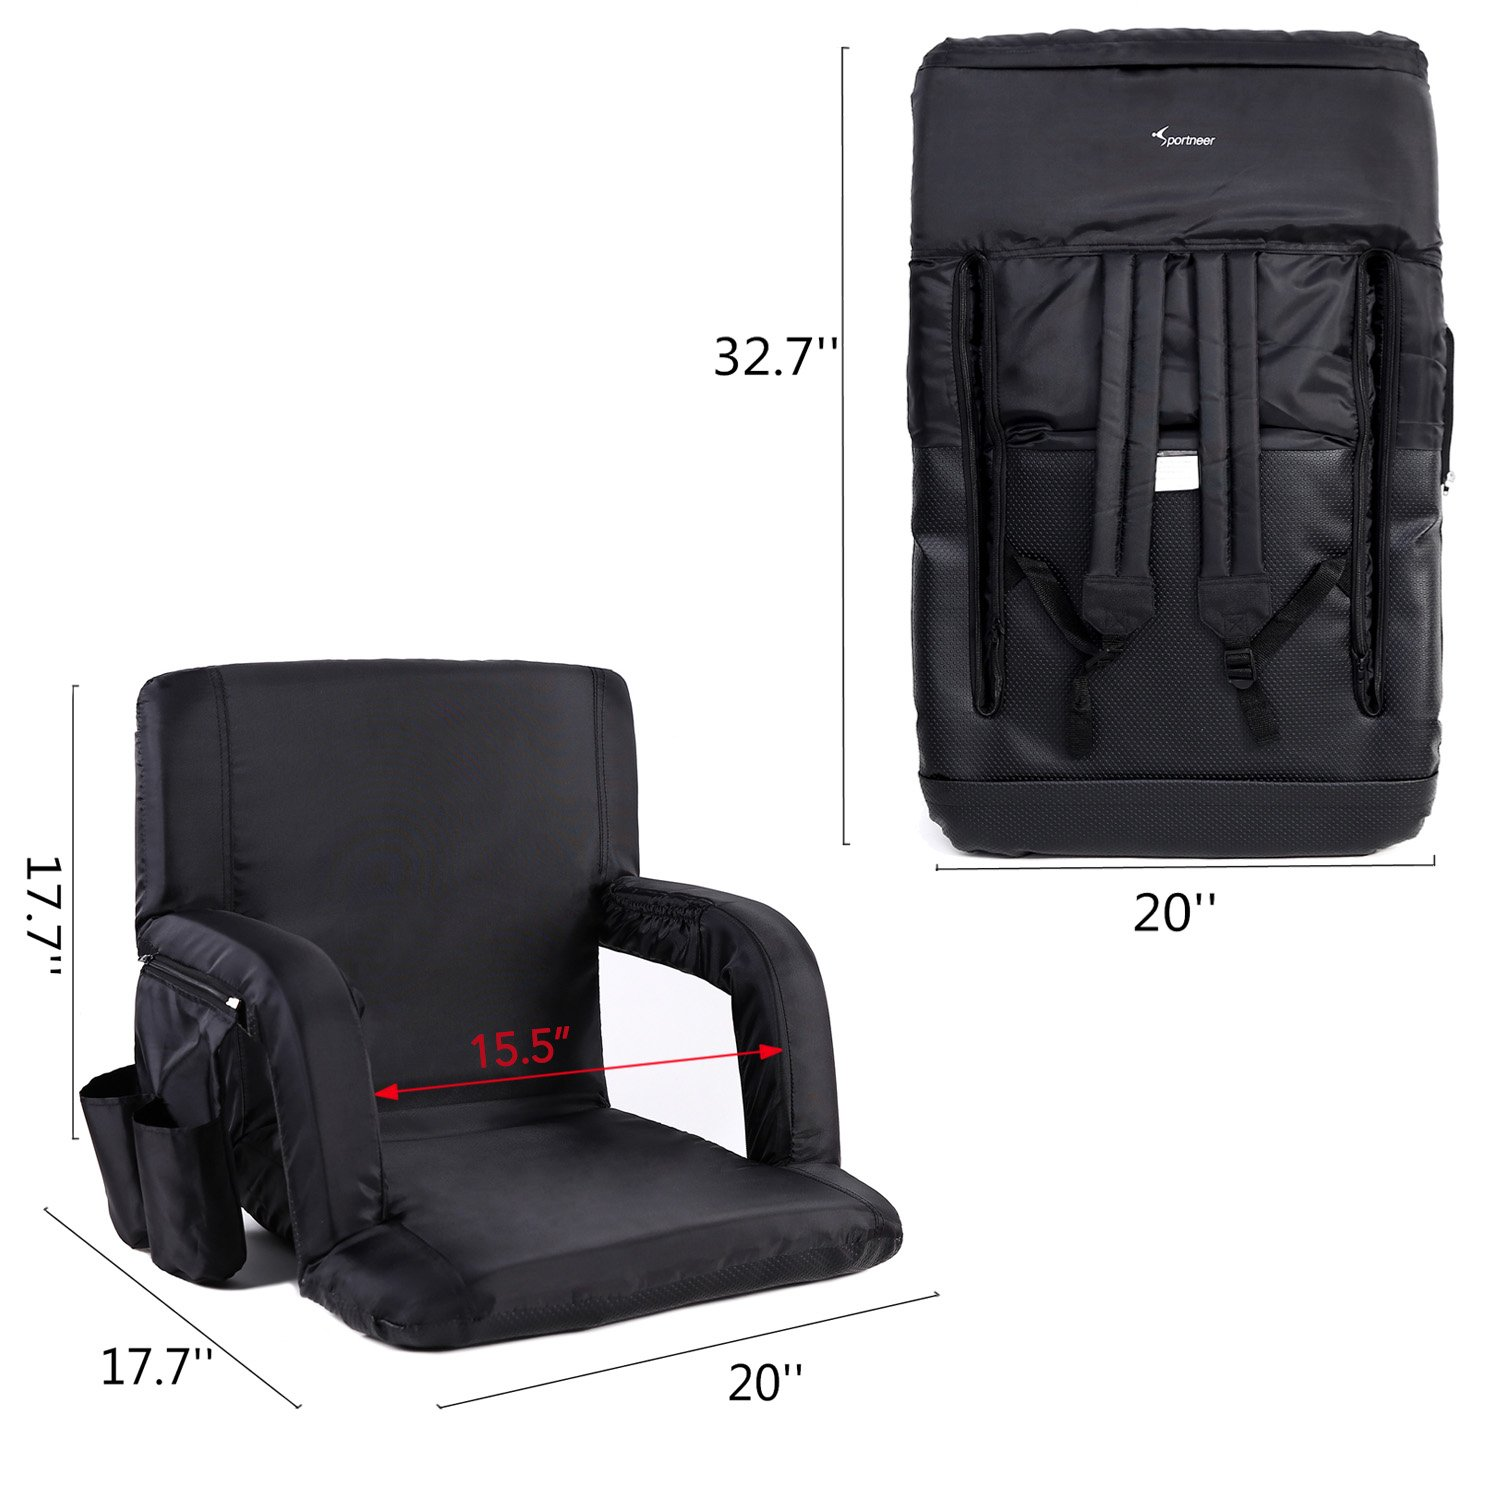 Sportneer Reclining Seat for Bleachers with Padded Cushion Shoulder Straps Portable Stadium Seat Chair